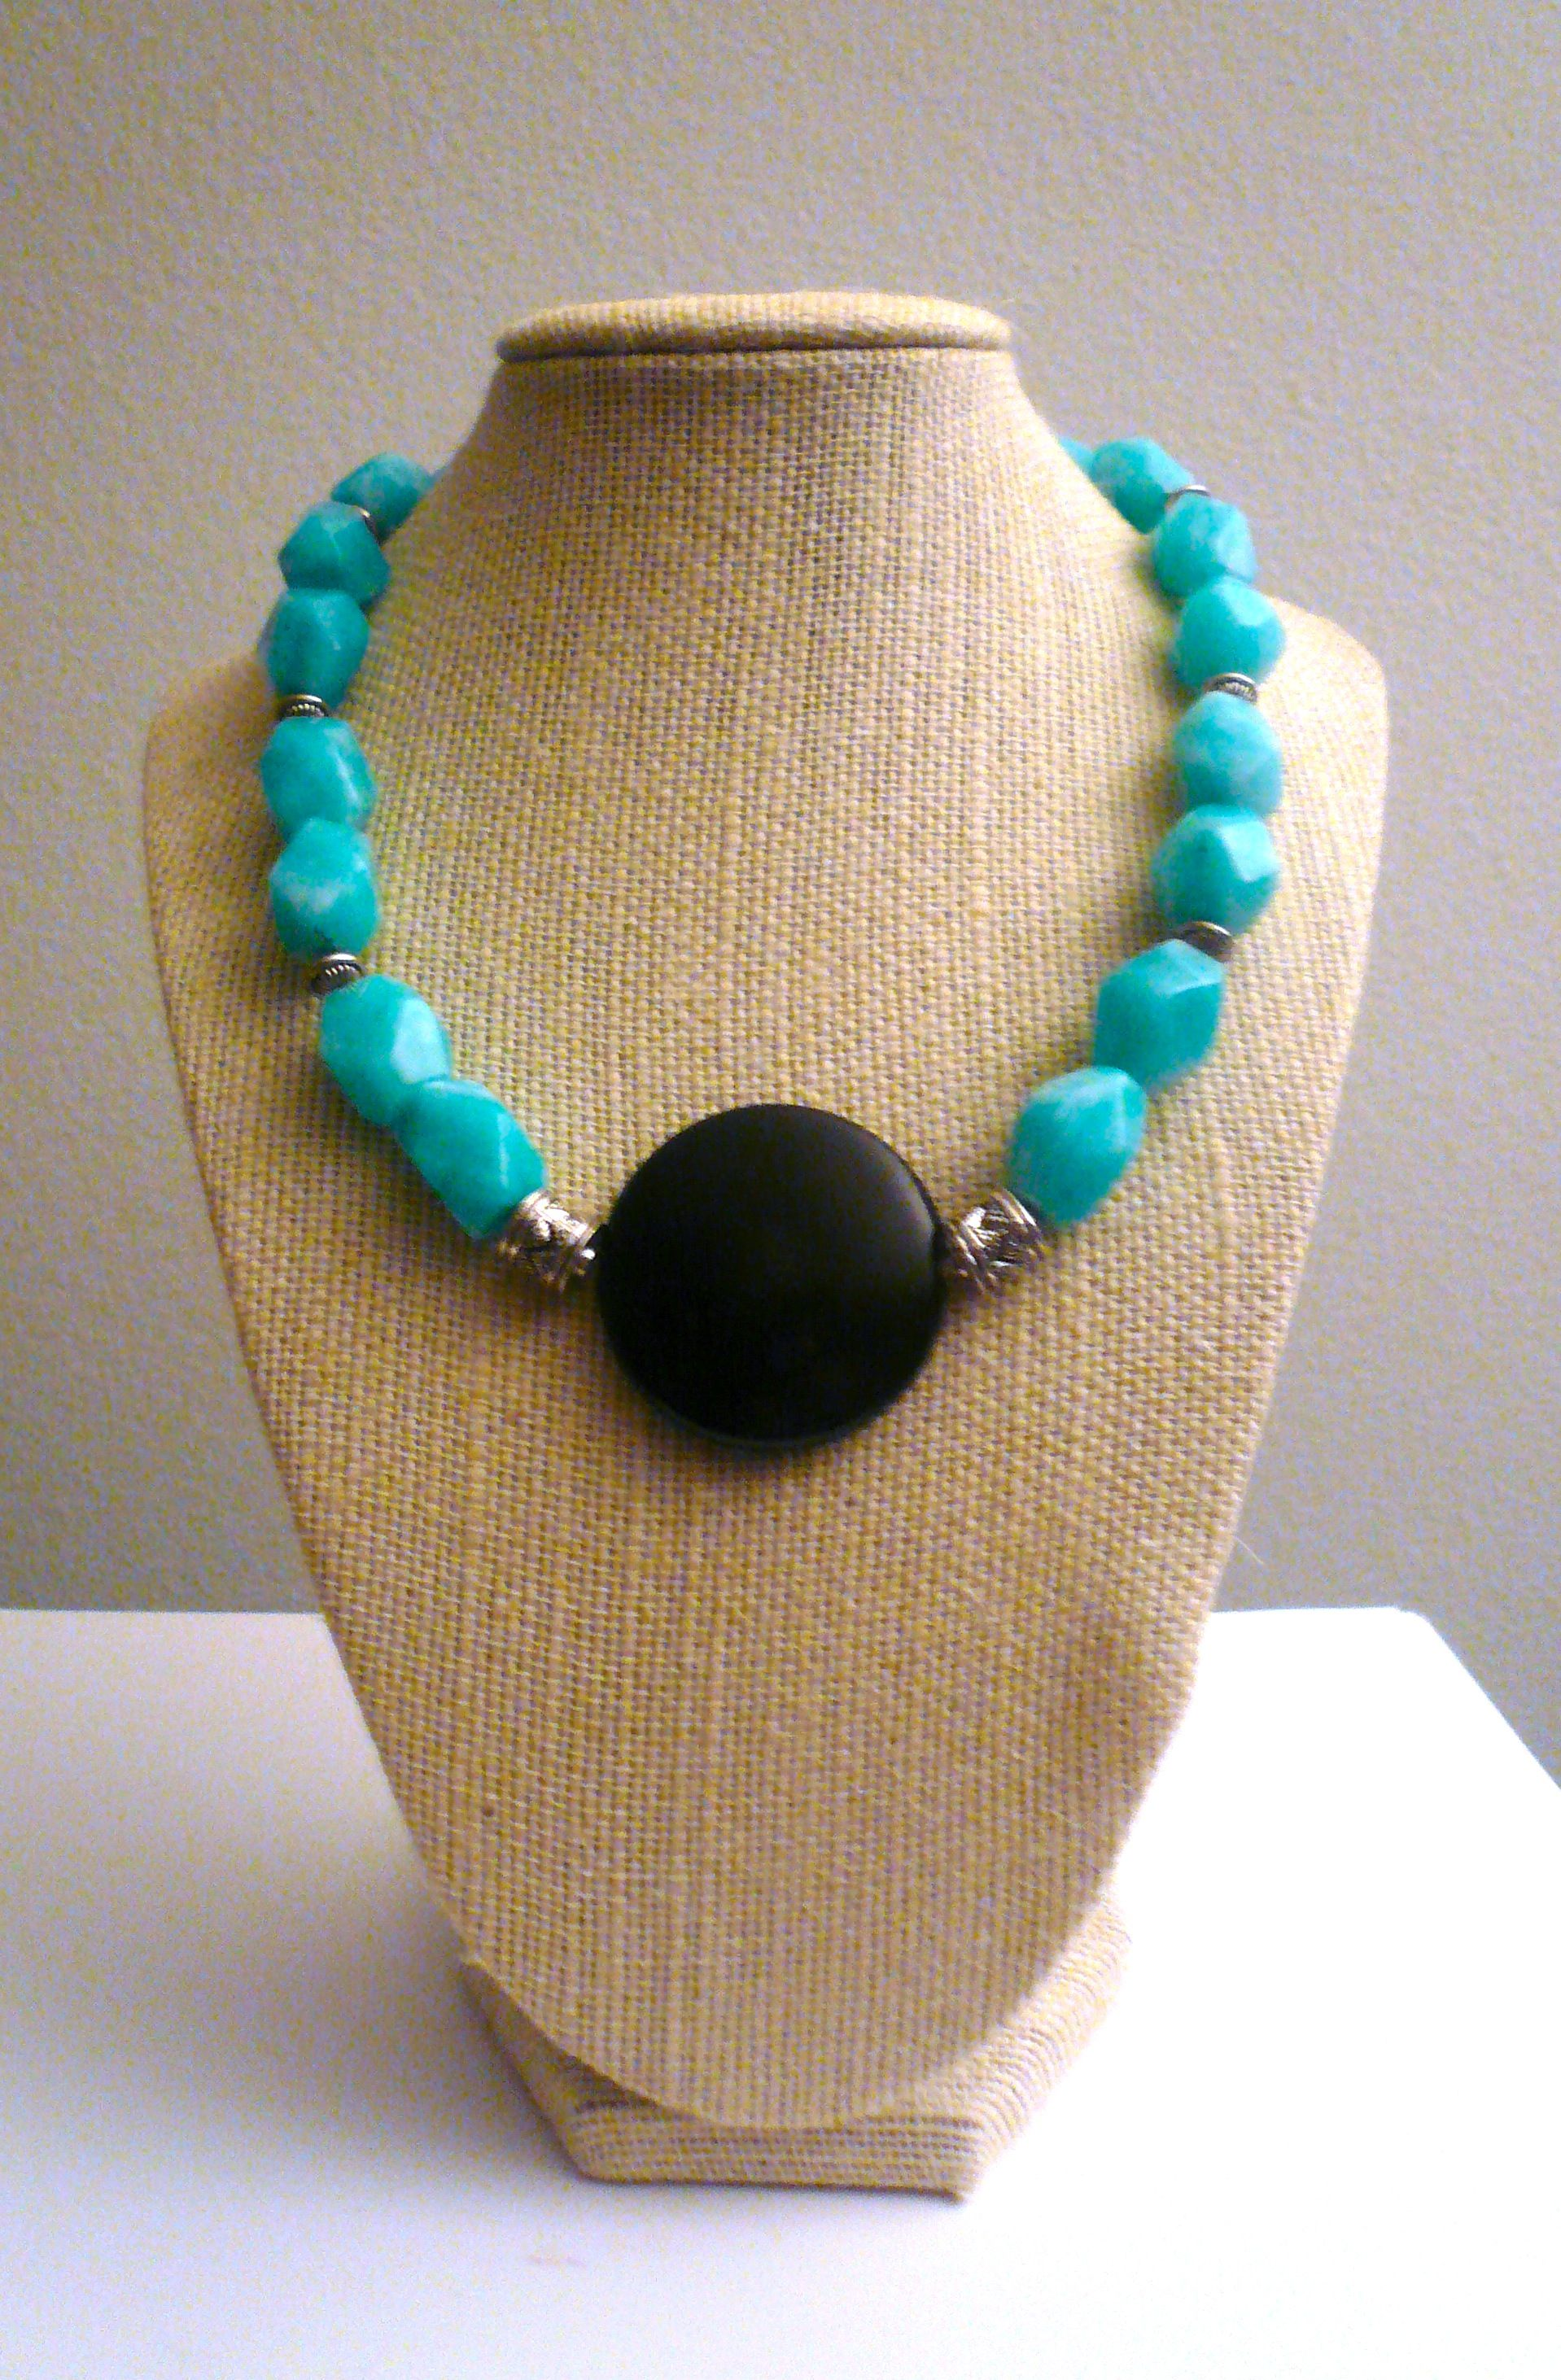 Onyx and Amazonite Necklace by GlamRox